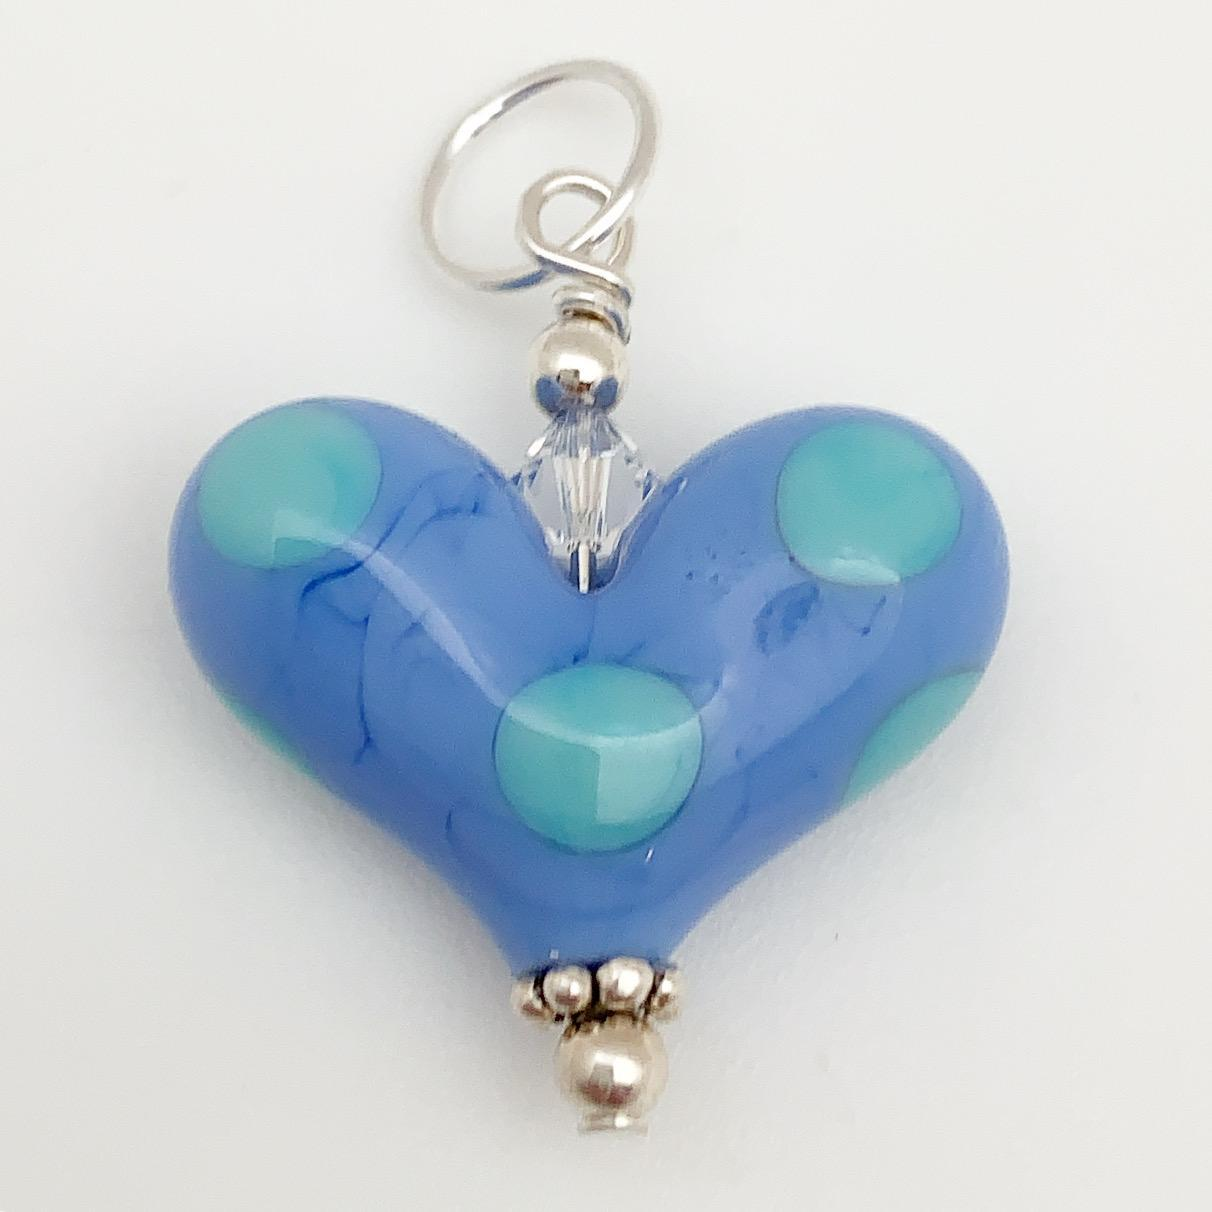 Pendant - Glass Heart - Turquoise Polka Dot - Small